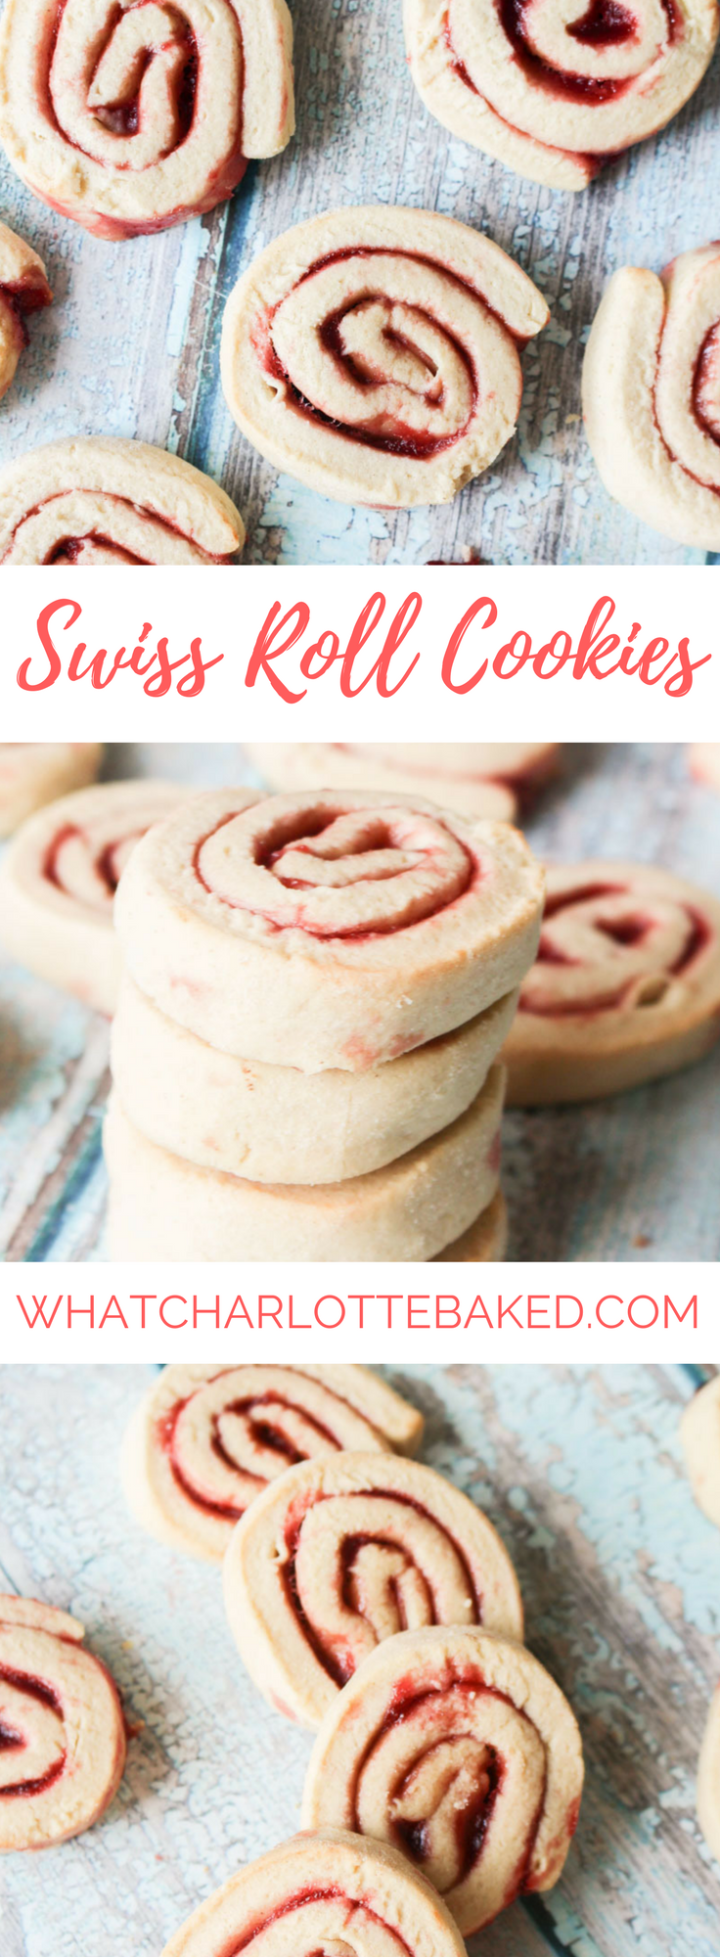 Swiss Roll Cookies recipe | What Charlotte Baked